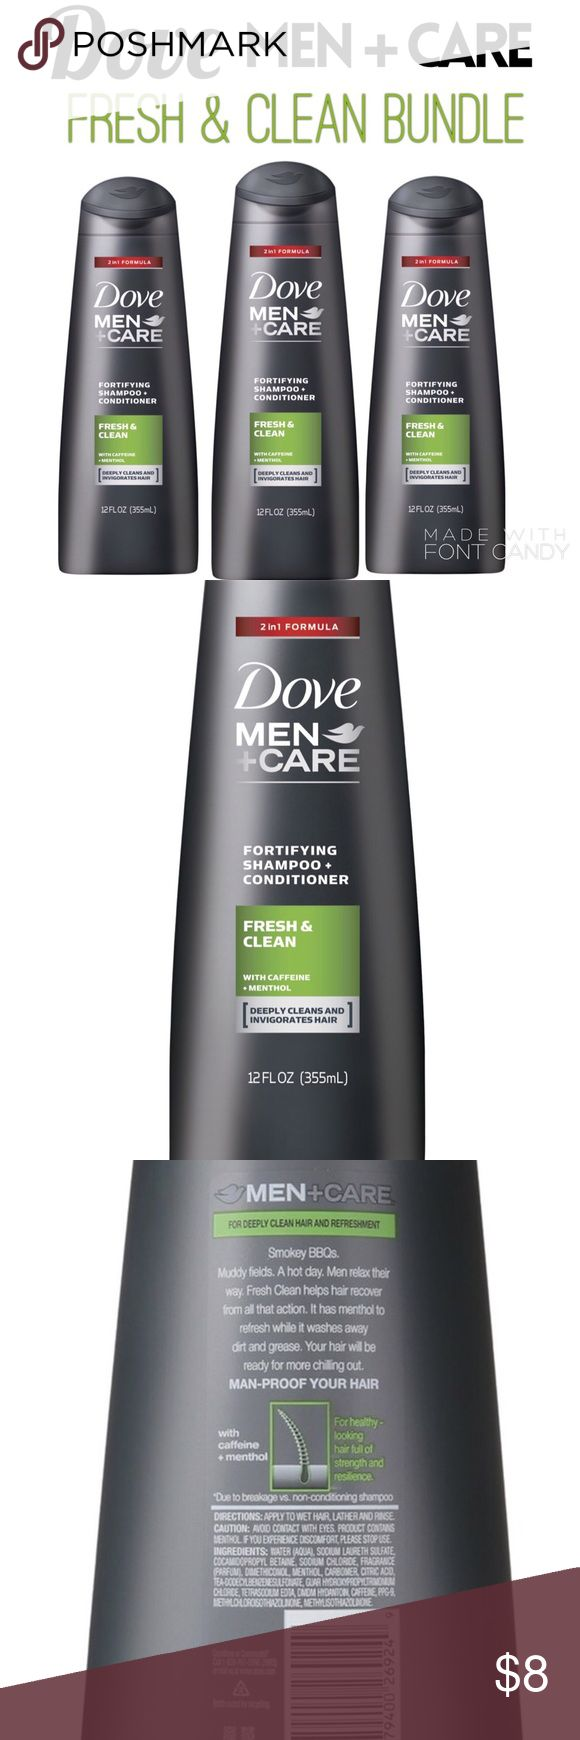 🆕 3 Dove Men+Care 2in1 Fresh & Clean Hair Bundle Dove Men + Care Fortifying 2-in-1 Shampoo + Conditioners make hair stronger and more resilient so that men can pursue their active lifestyles. Cleans and invigorates hair with a refreshing effect, and is infused with caffeine + menthol. It helps strengthen hair, leaving it visibly healthy, thicker and resilient, with a 2-in-1 formula that functions as a shampoo and conditioner so that it cleanses and conditions hair simultaneously.  Paid…